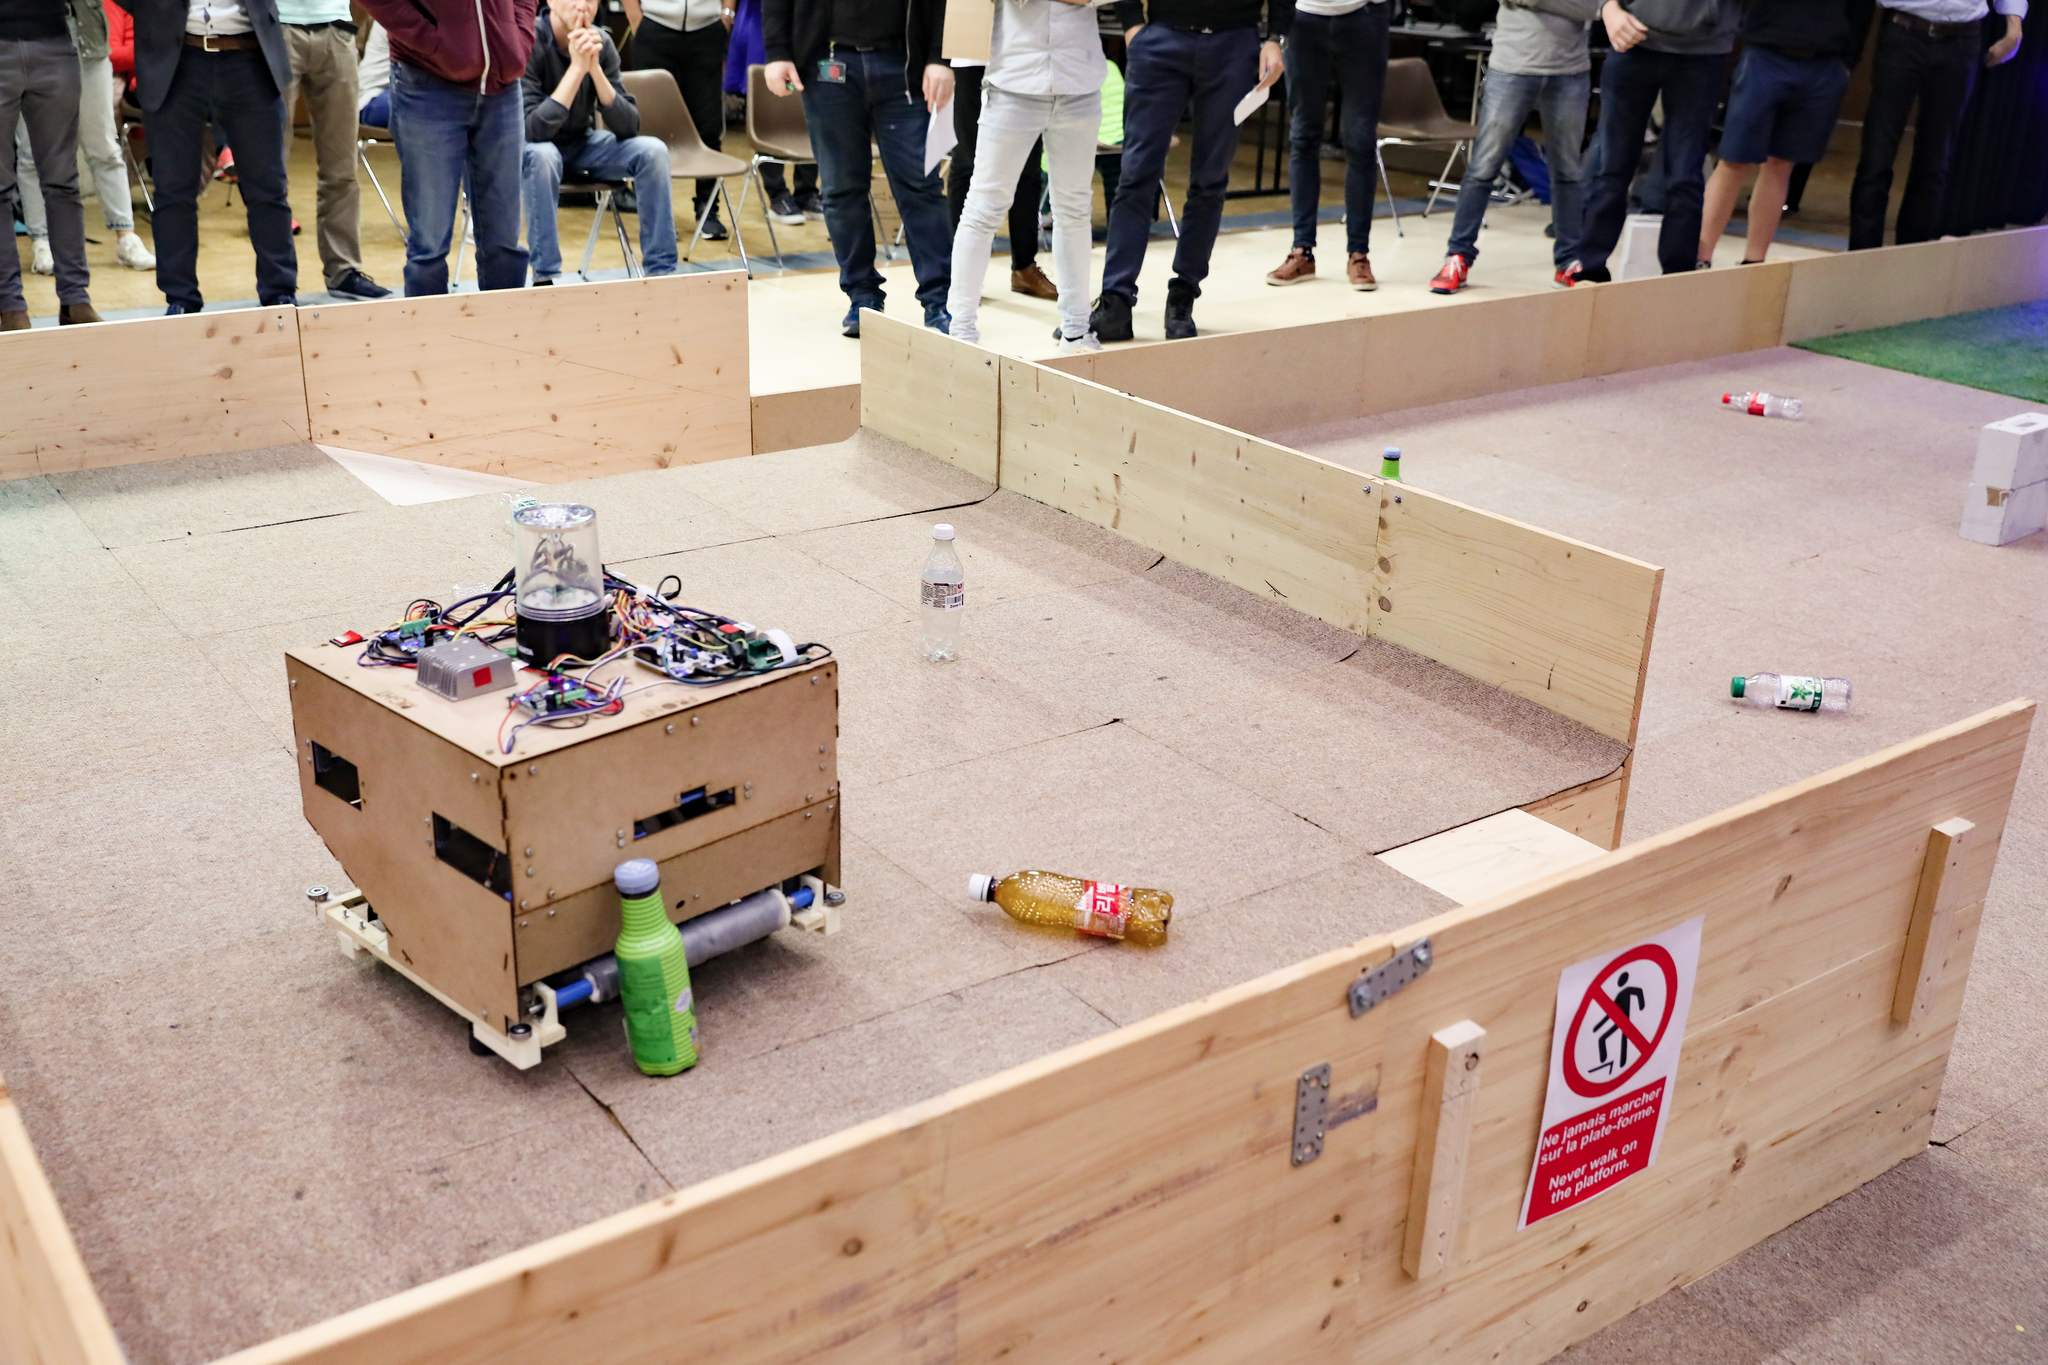 Robot competition image